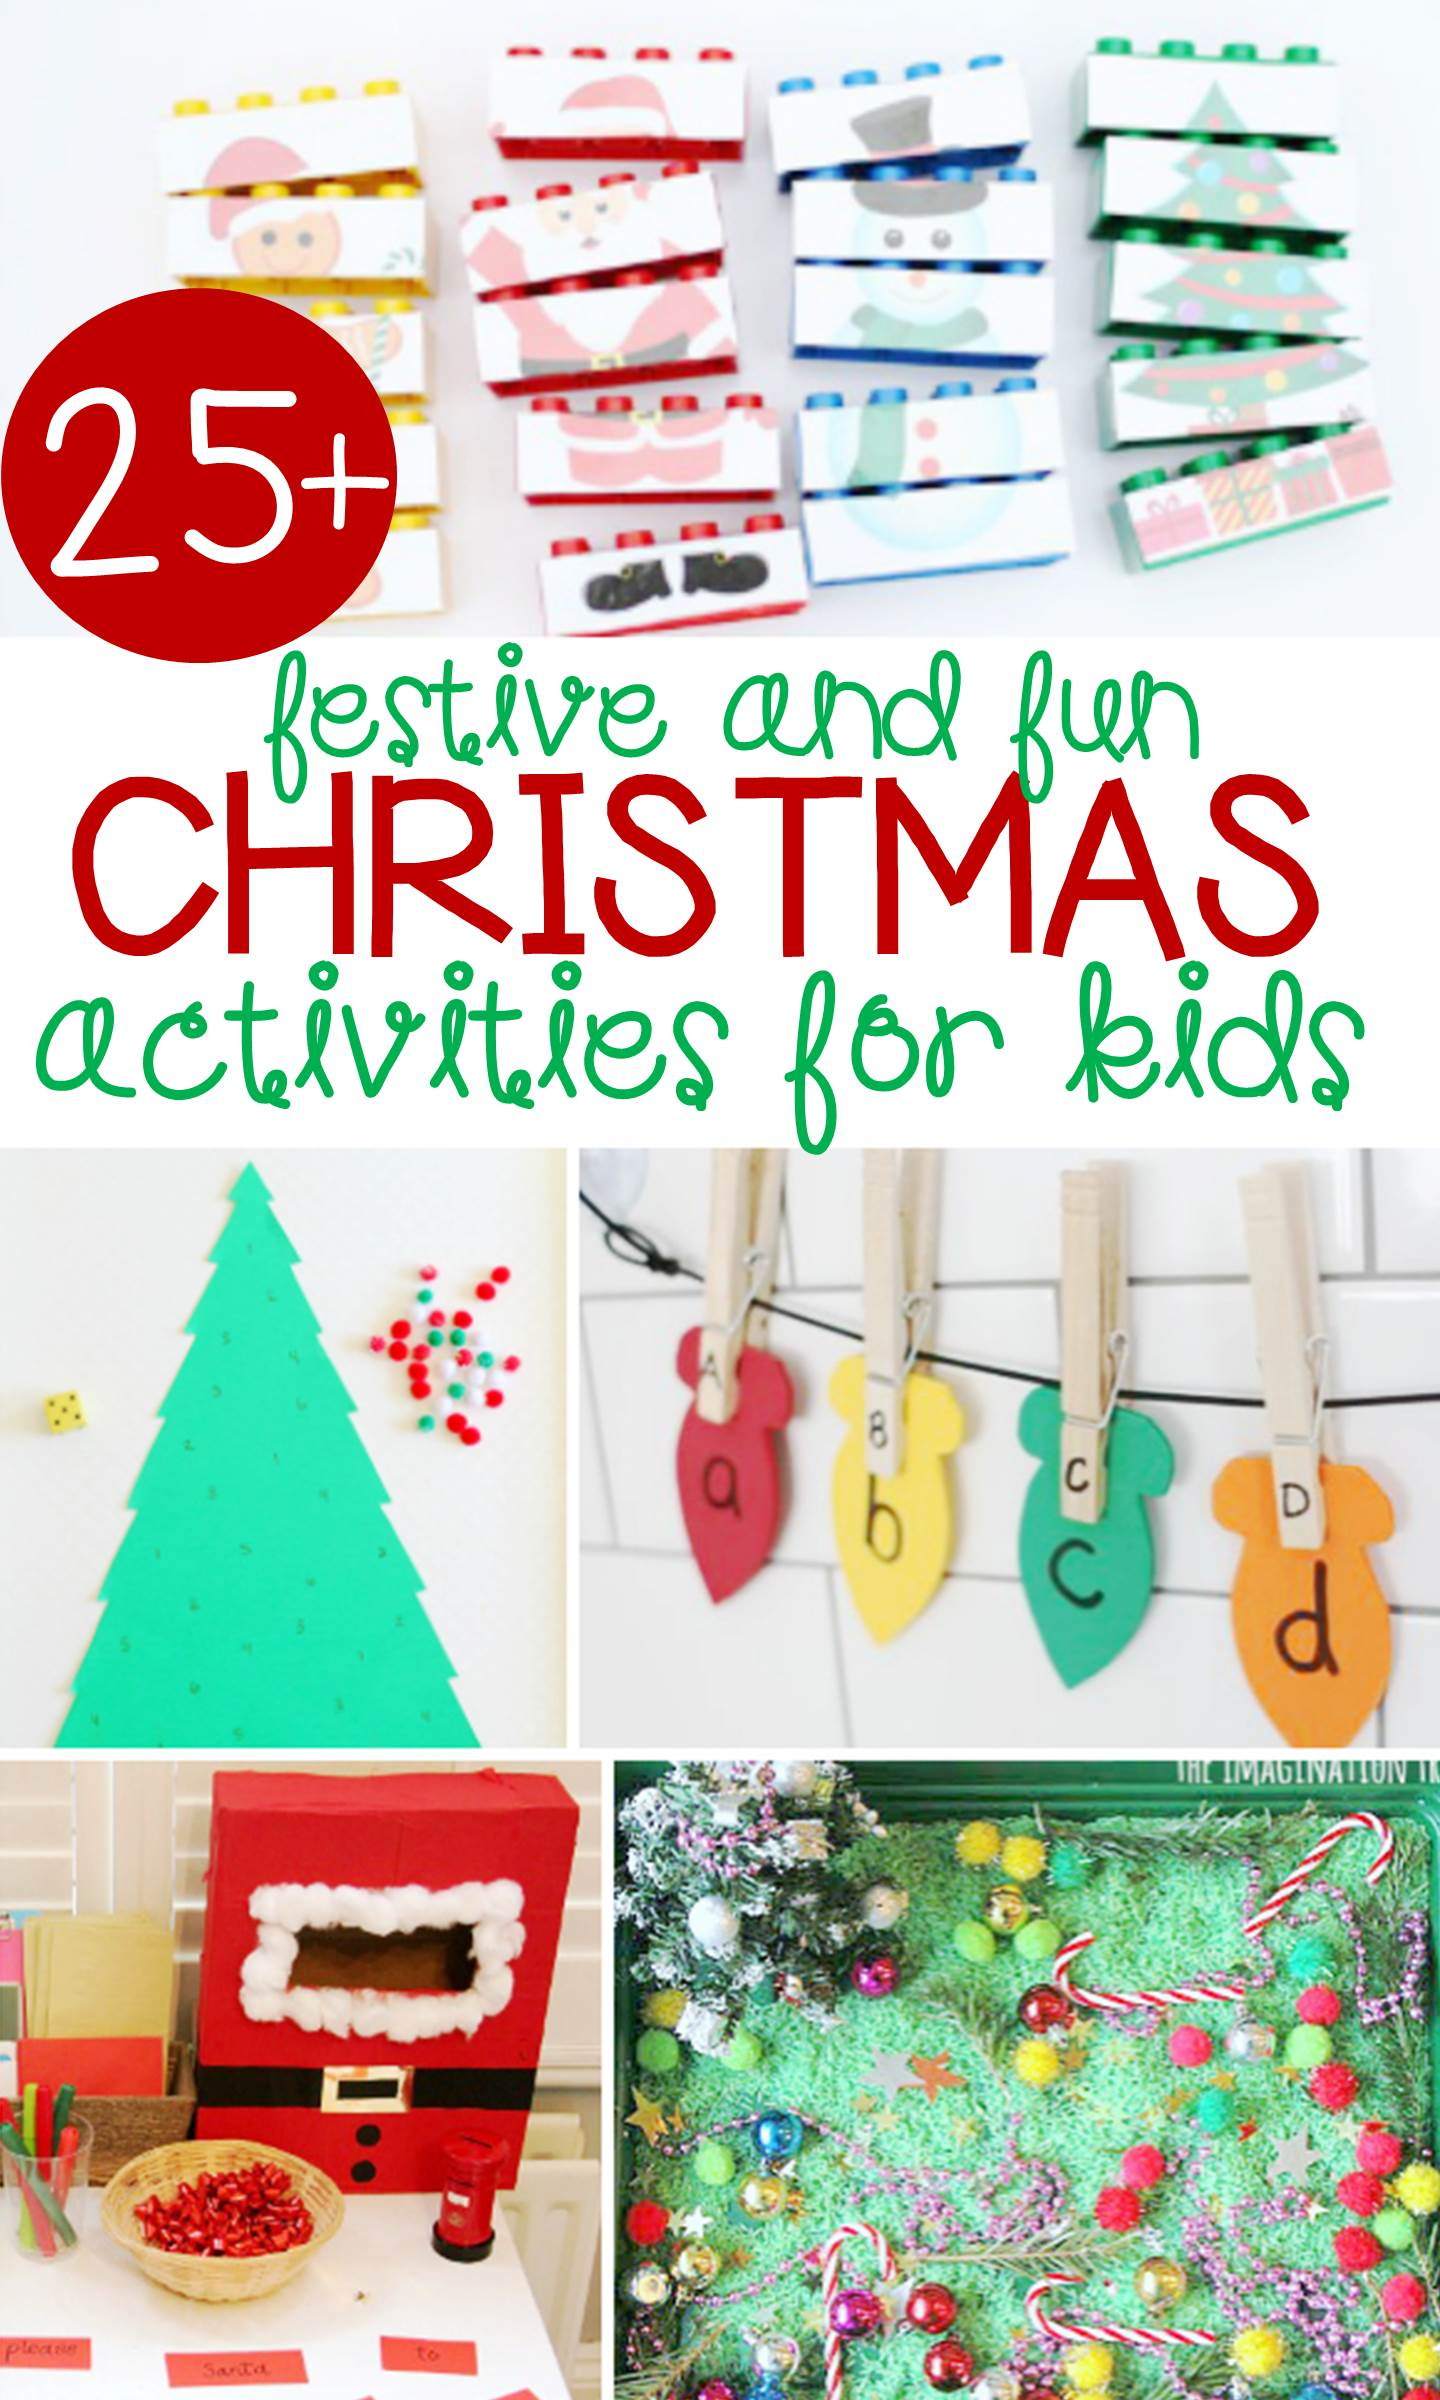 This collection of festive and fun Christmas activities for kids has something for everyone, from printables to crafts, art projects, sensory, and more!